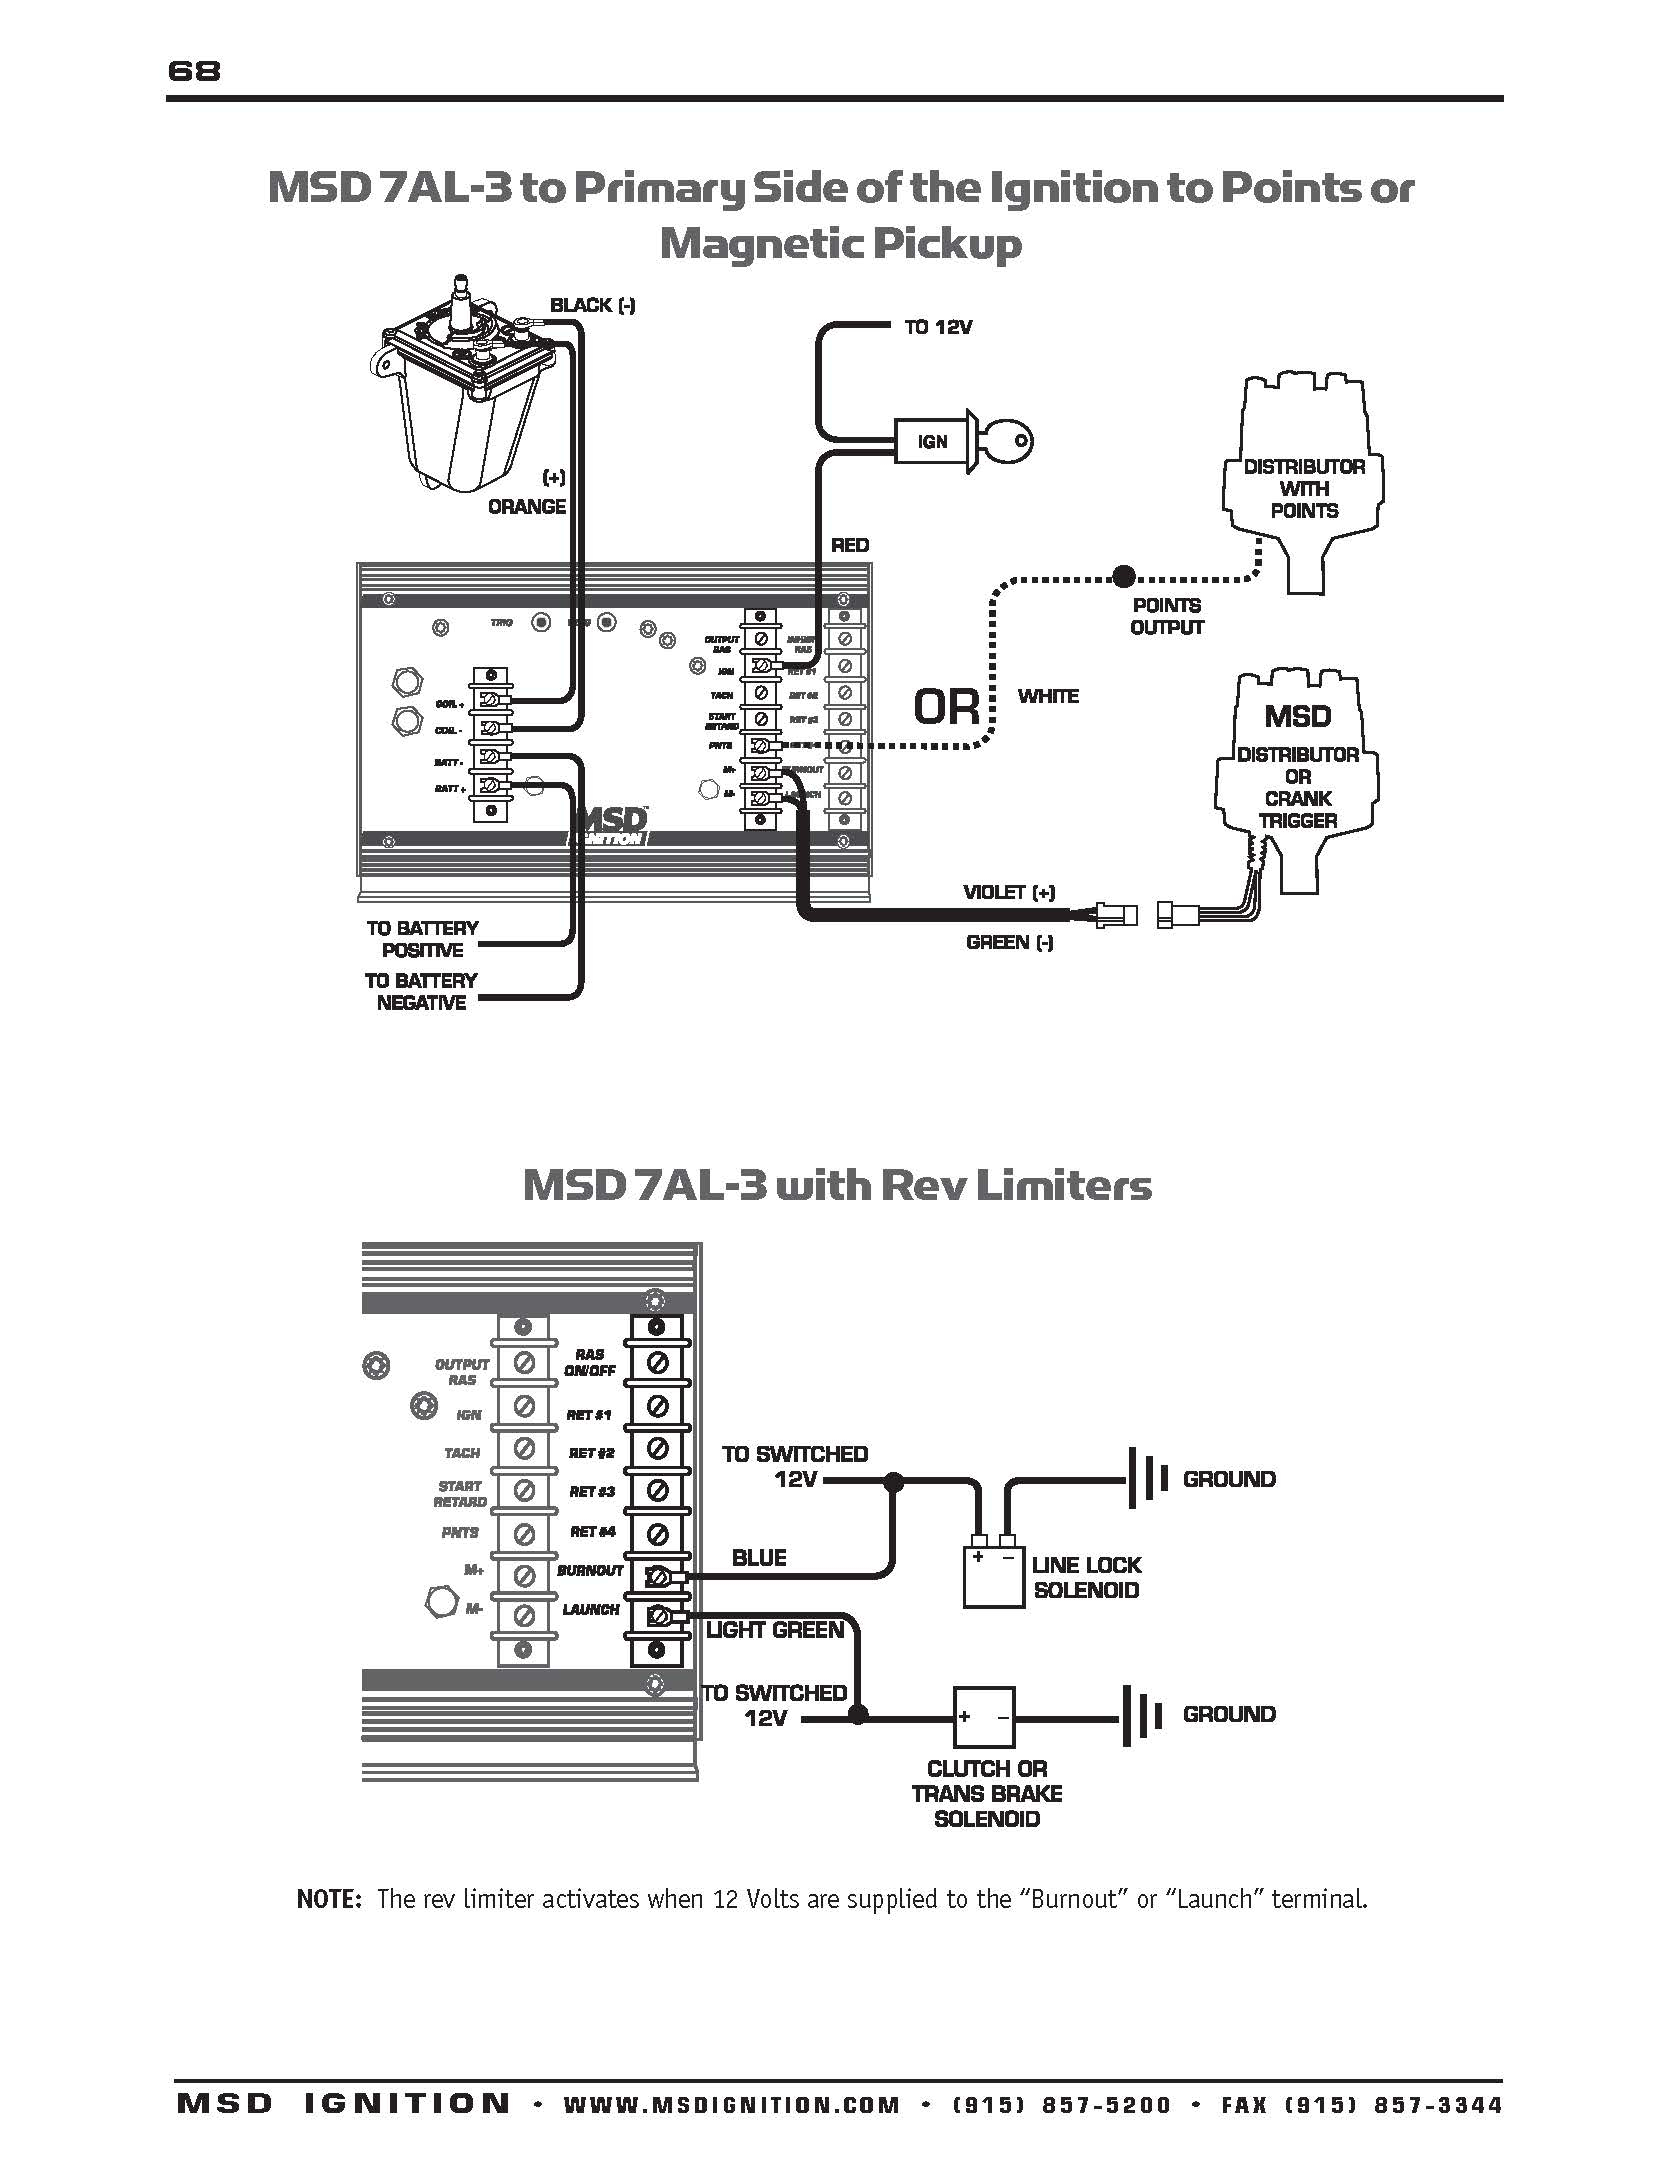 [DIAGRAM] Holley And Msd Created A Plug Wiring Diagram